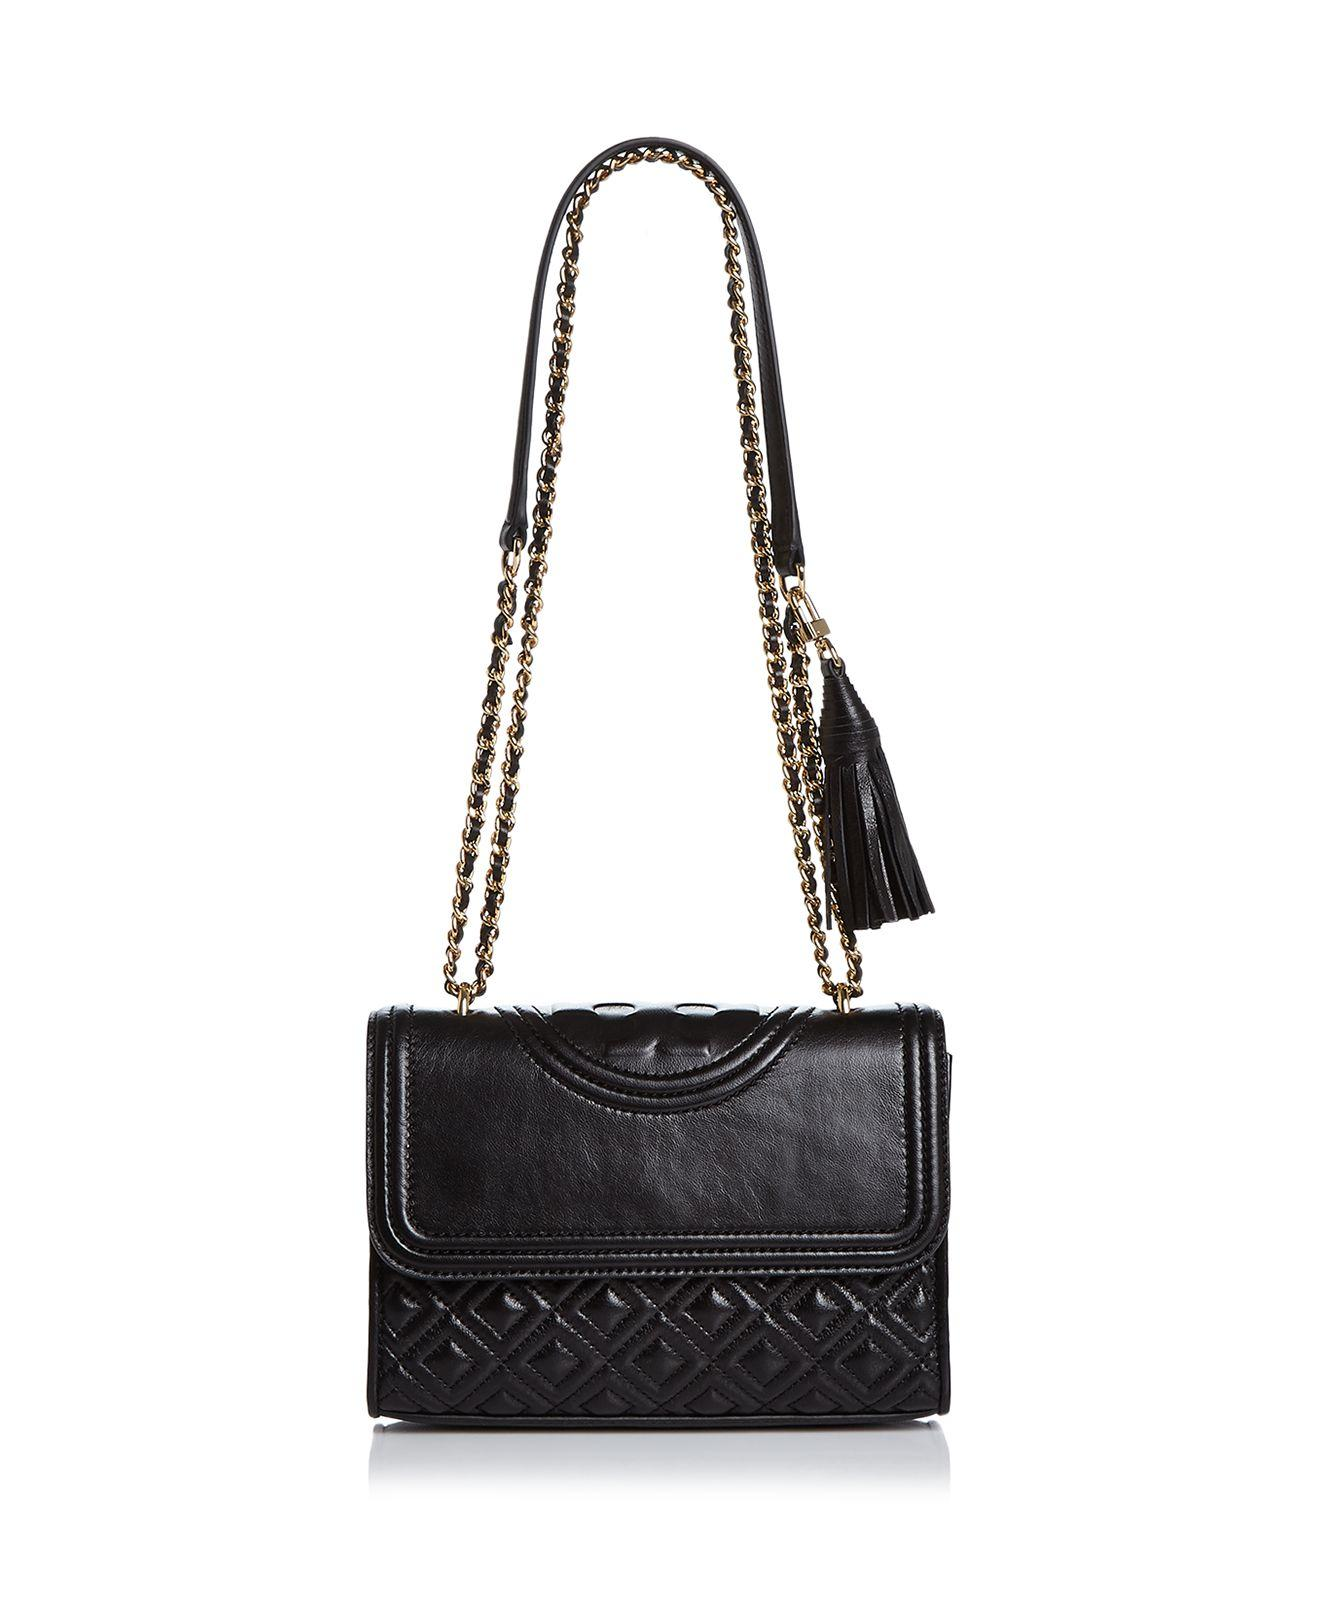 Tory burch Fleming Convertible Small Leather Shoulder Bag in Black ...